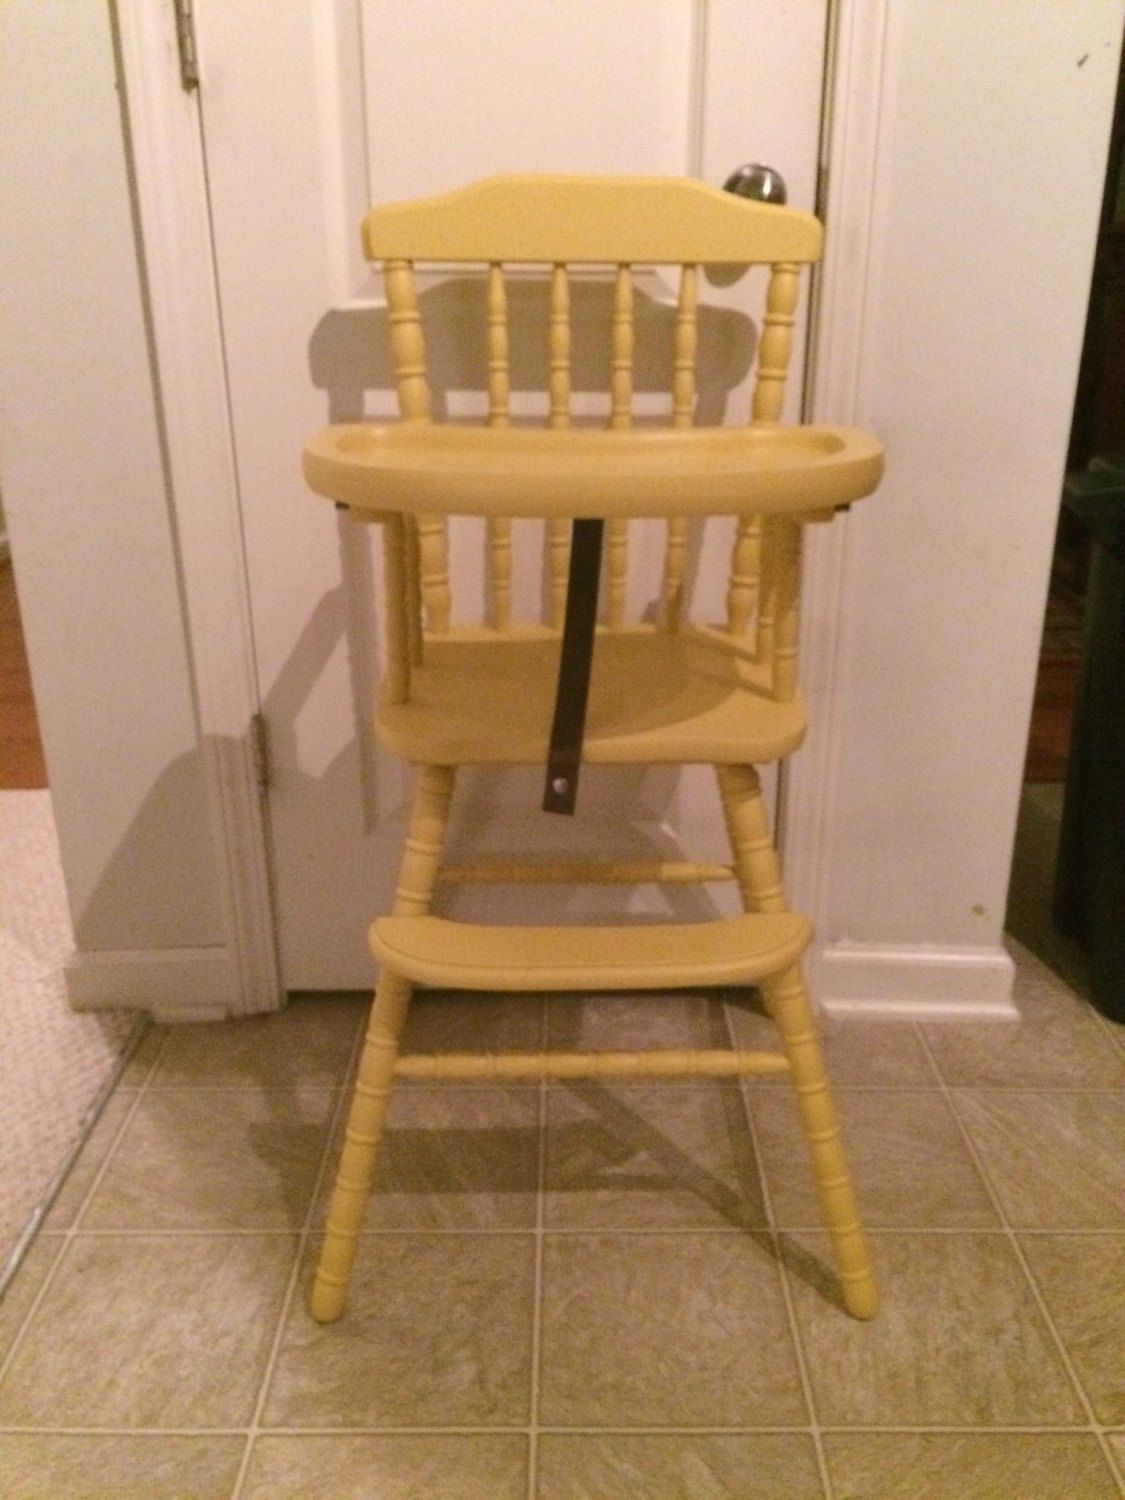 Vintage Wooden High Chair, Jenny Lind, Antique High Chair, Vintage High  Chair, Custom Painted High Chair, 1st birthday, Smashcake by TheKristKorner  on Etsy - Original Price. Vintage Wooden High Chair, Jenny Lind, Antique High